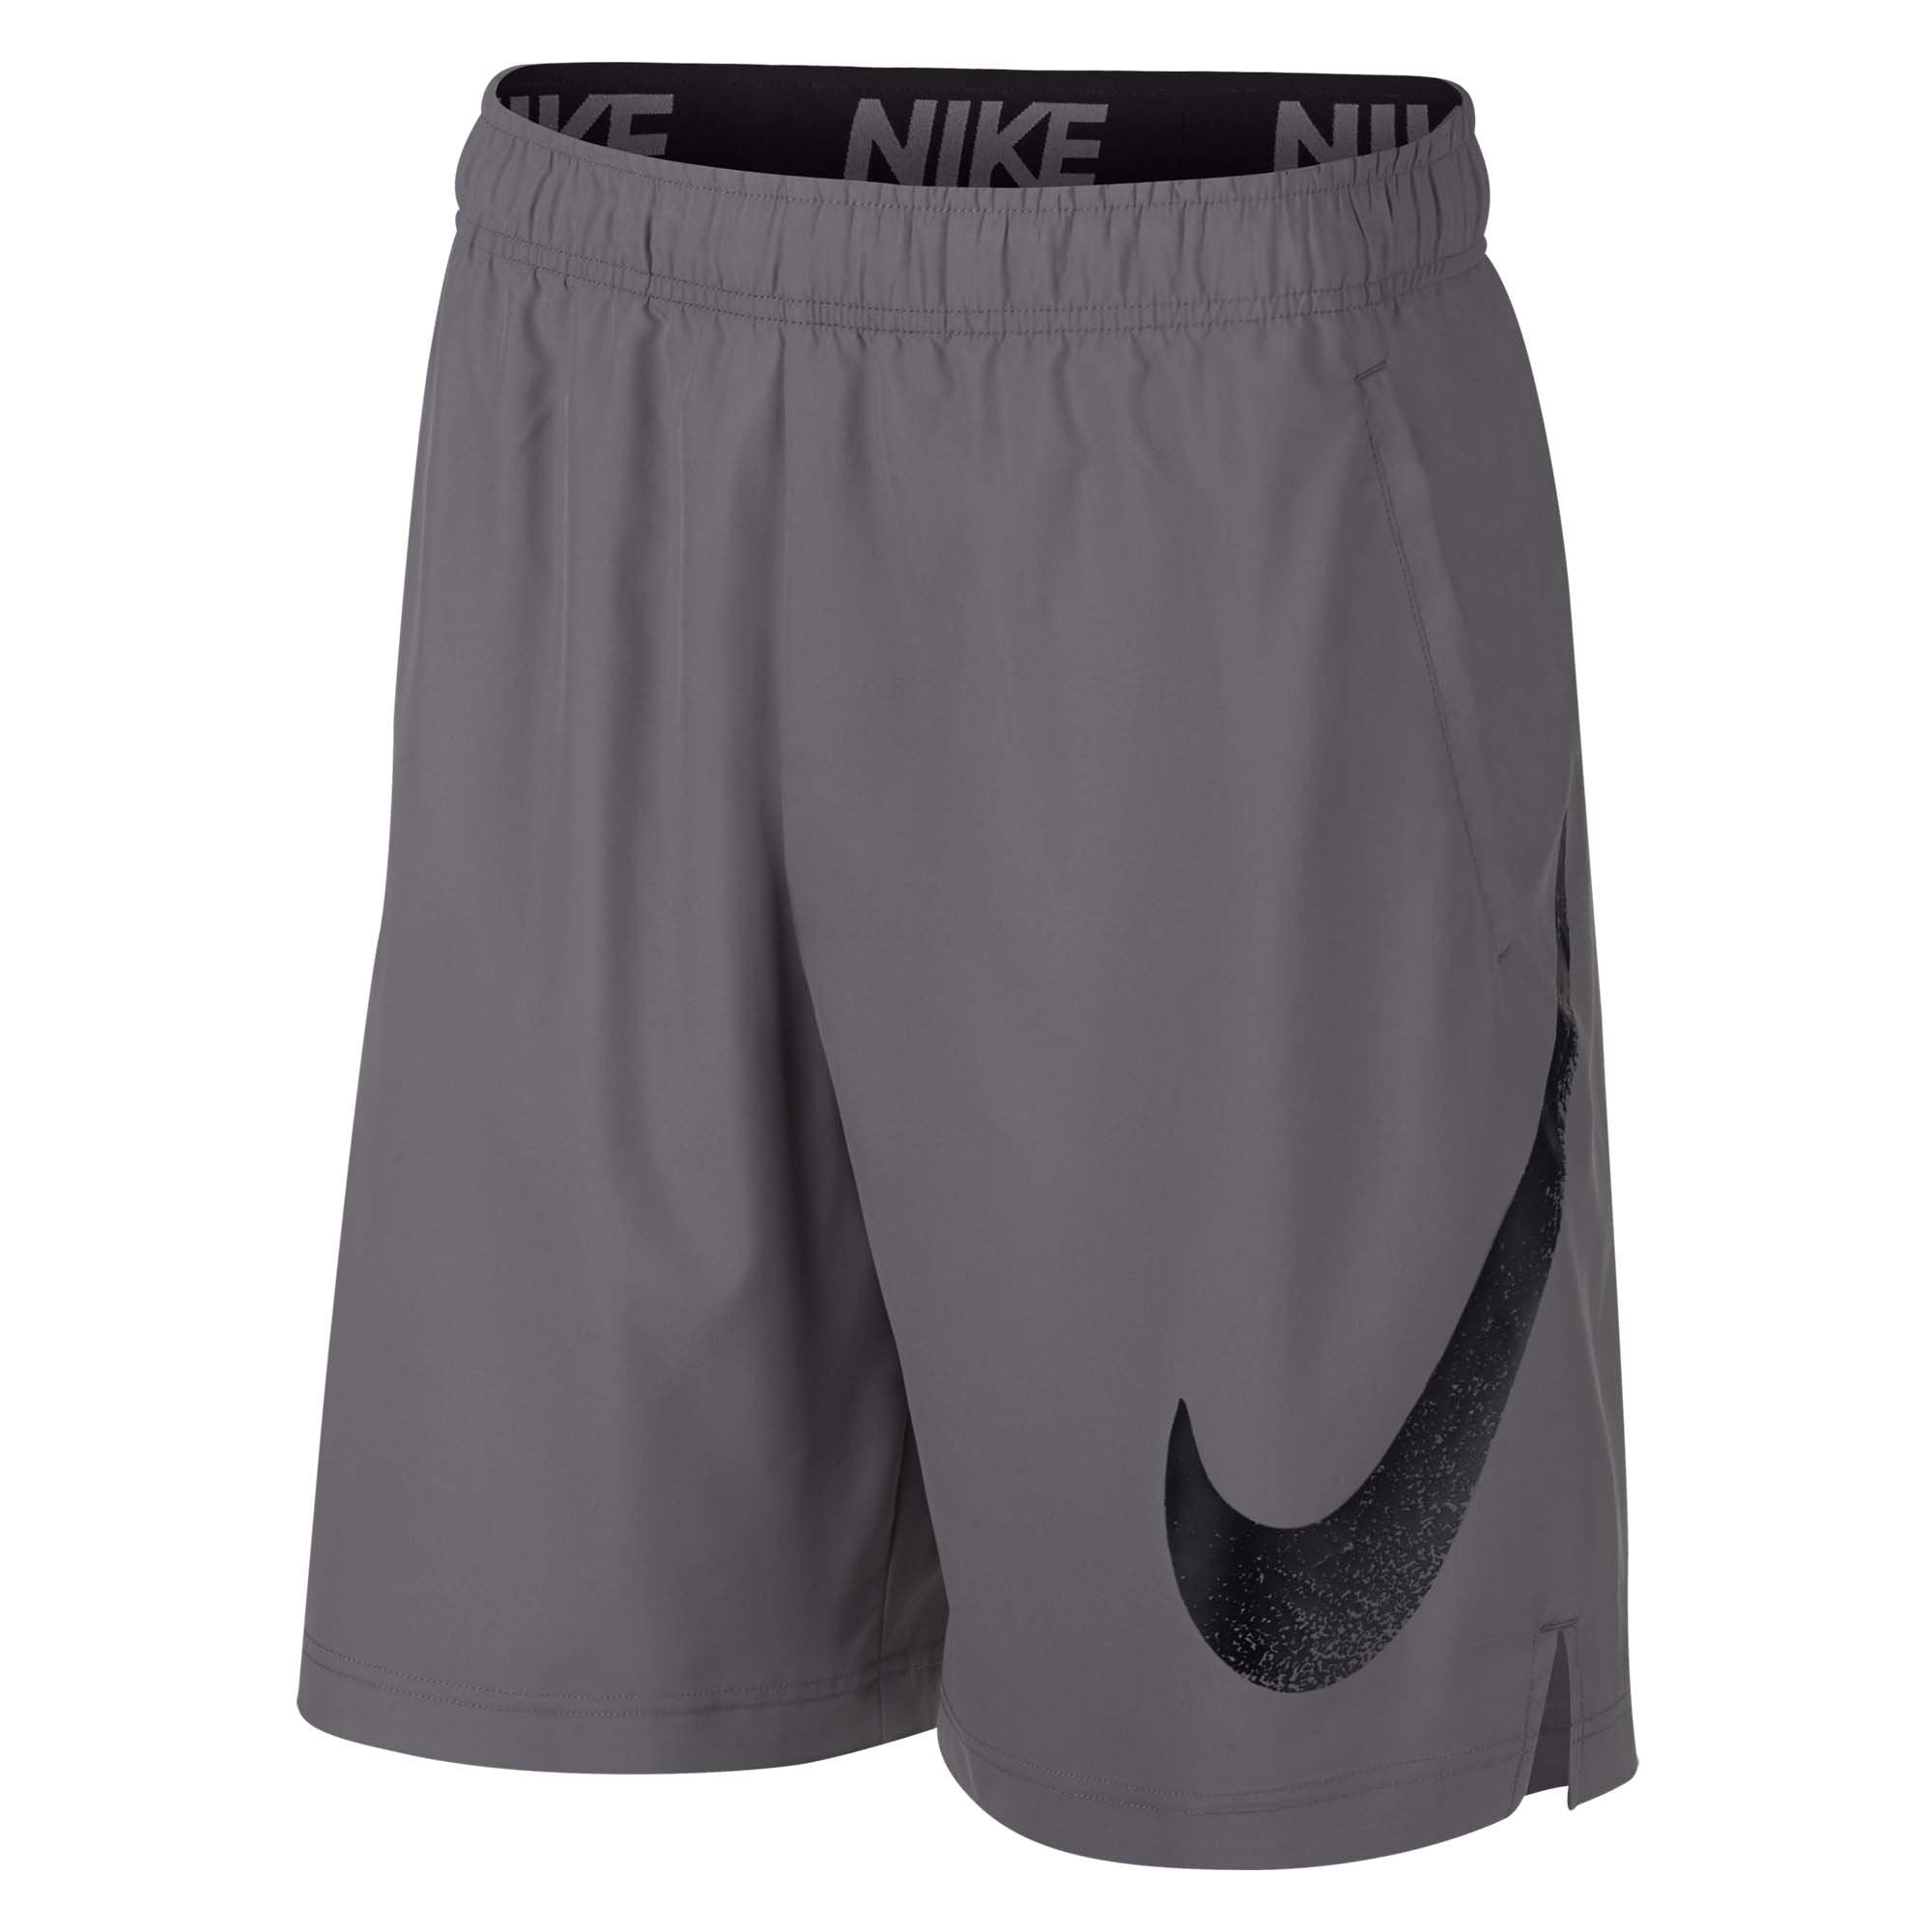 7ea332b54abf Buy Nike Men Flex Woven 2.0 Graphic Shorts Online in Singapore ...